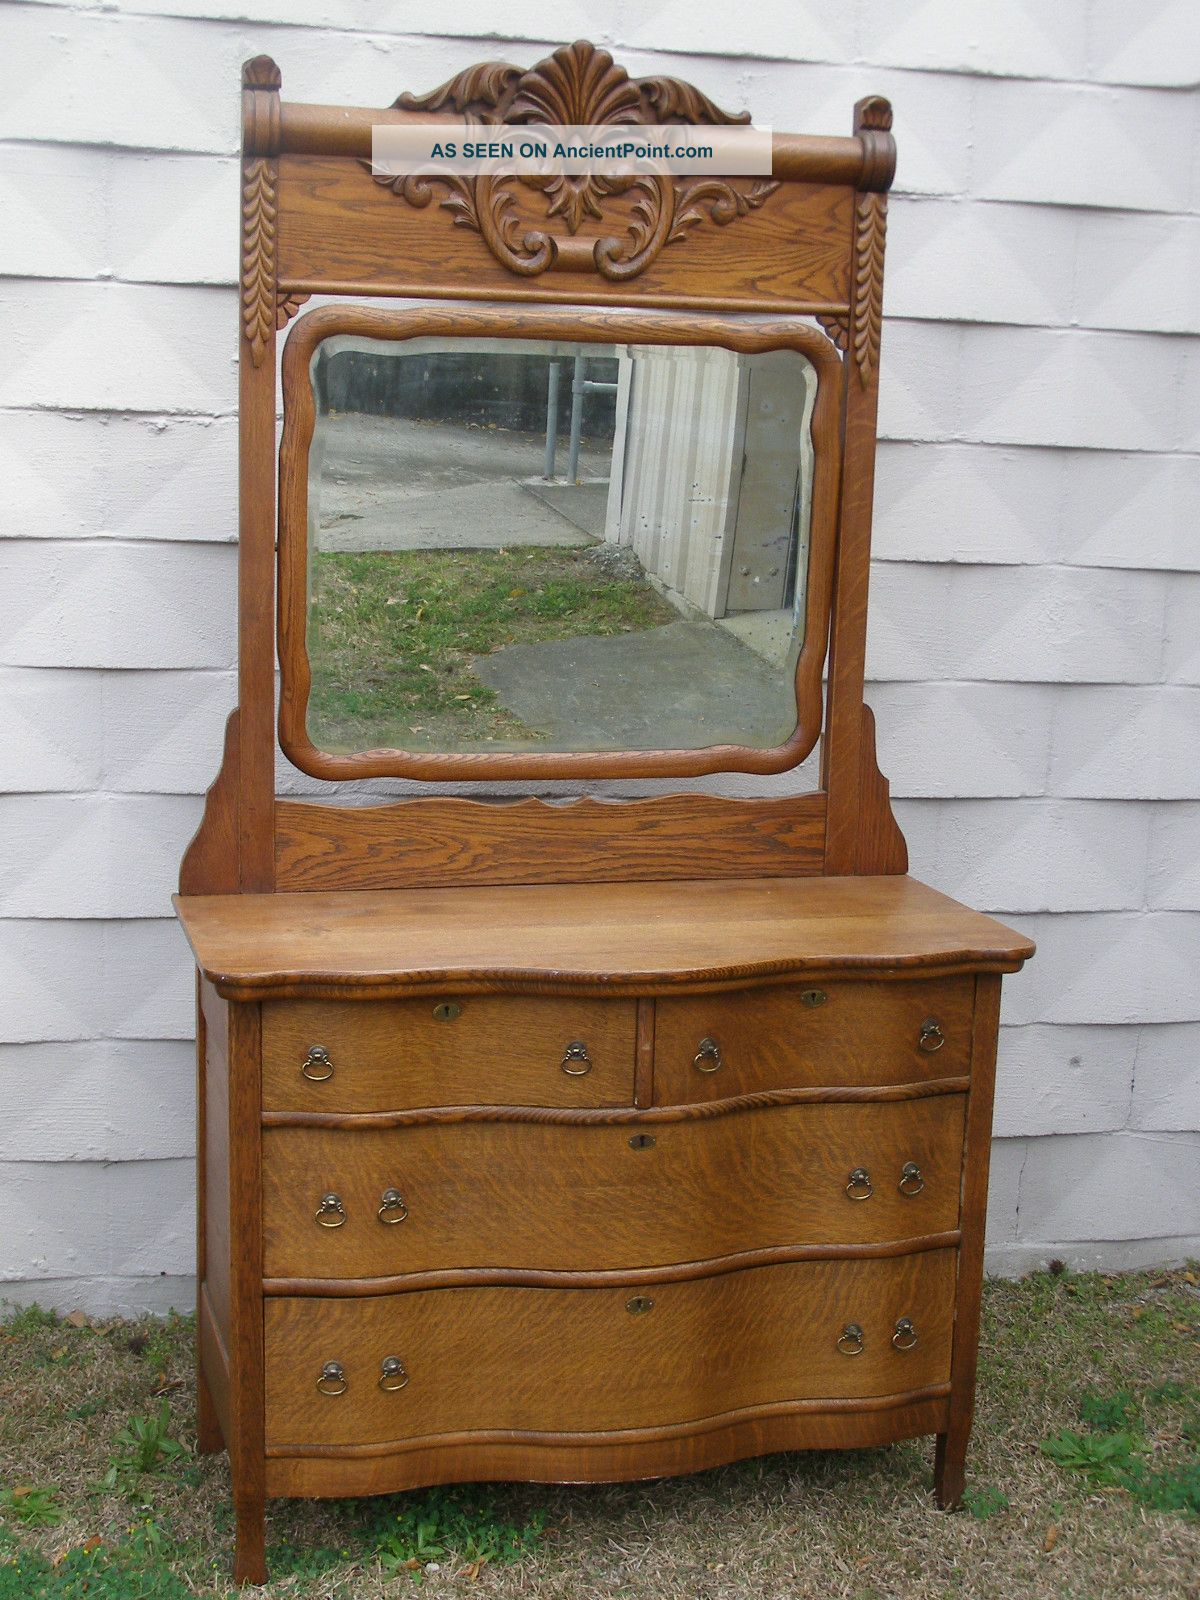 99899 Late 19th c antique quartersawn oak american carved dresser chest drawers mirror further Rustic Furniture moreover Oak Bedroom Furniture Sets Plans furthermore 2853 furthermore Mission Night Stand Plans. on mission style bedroom chest drawers